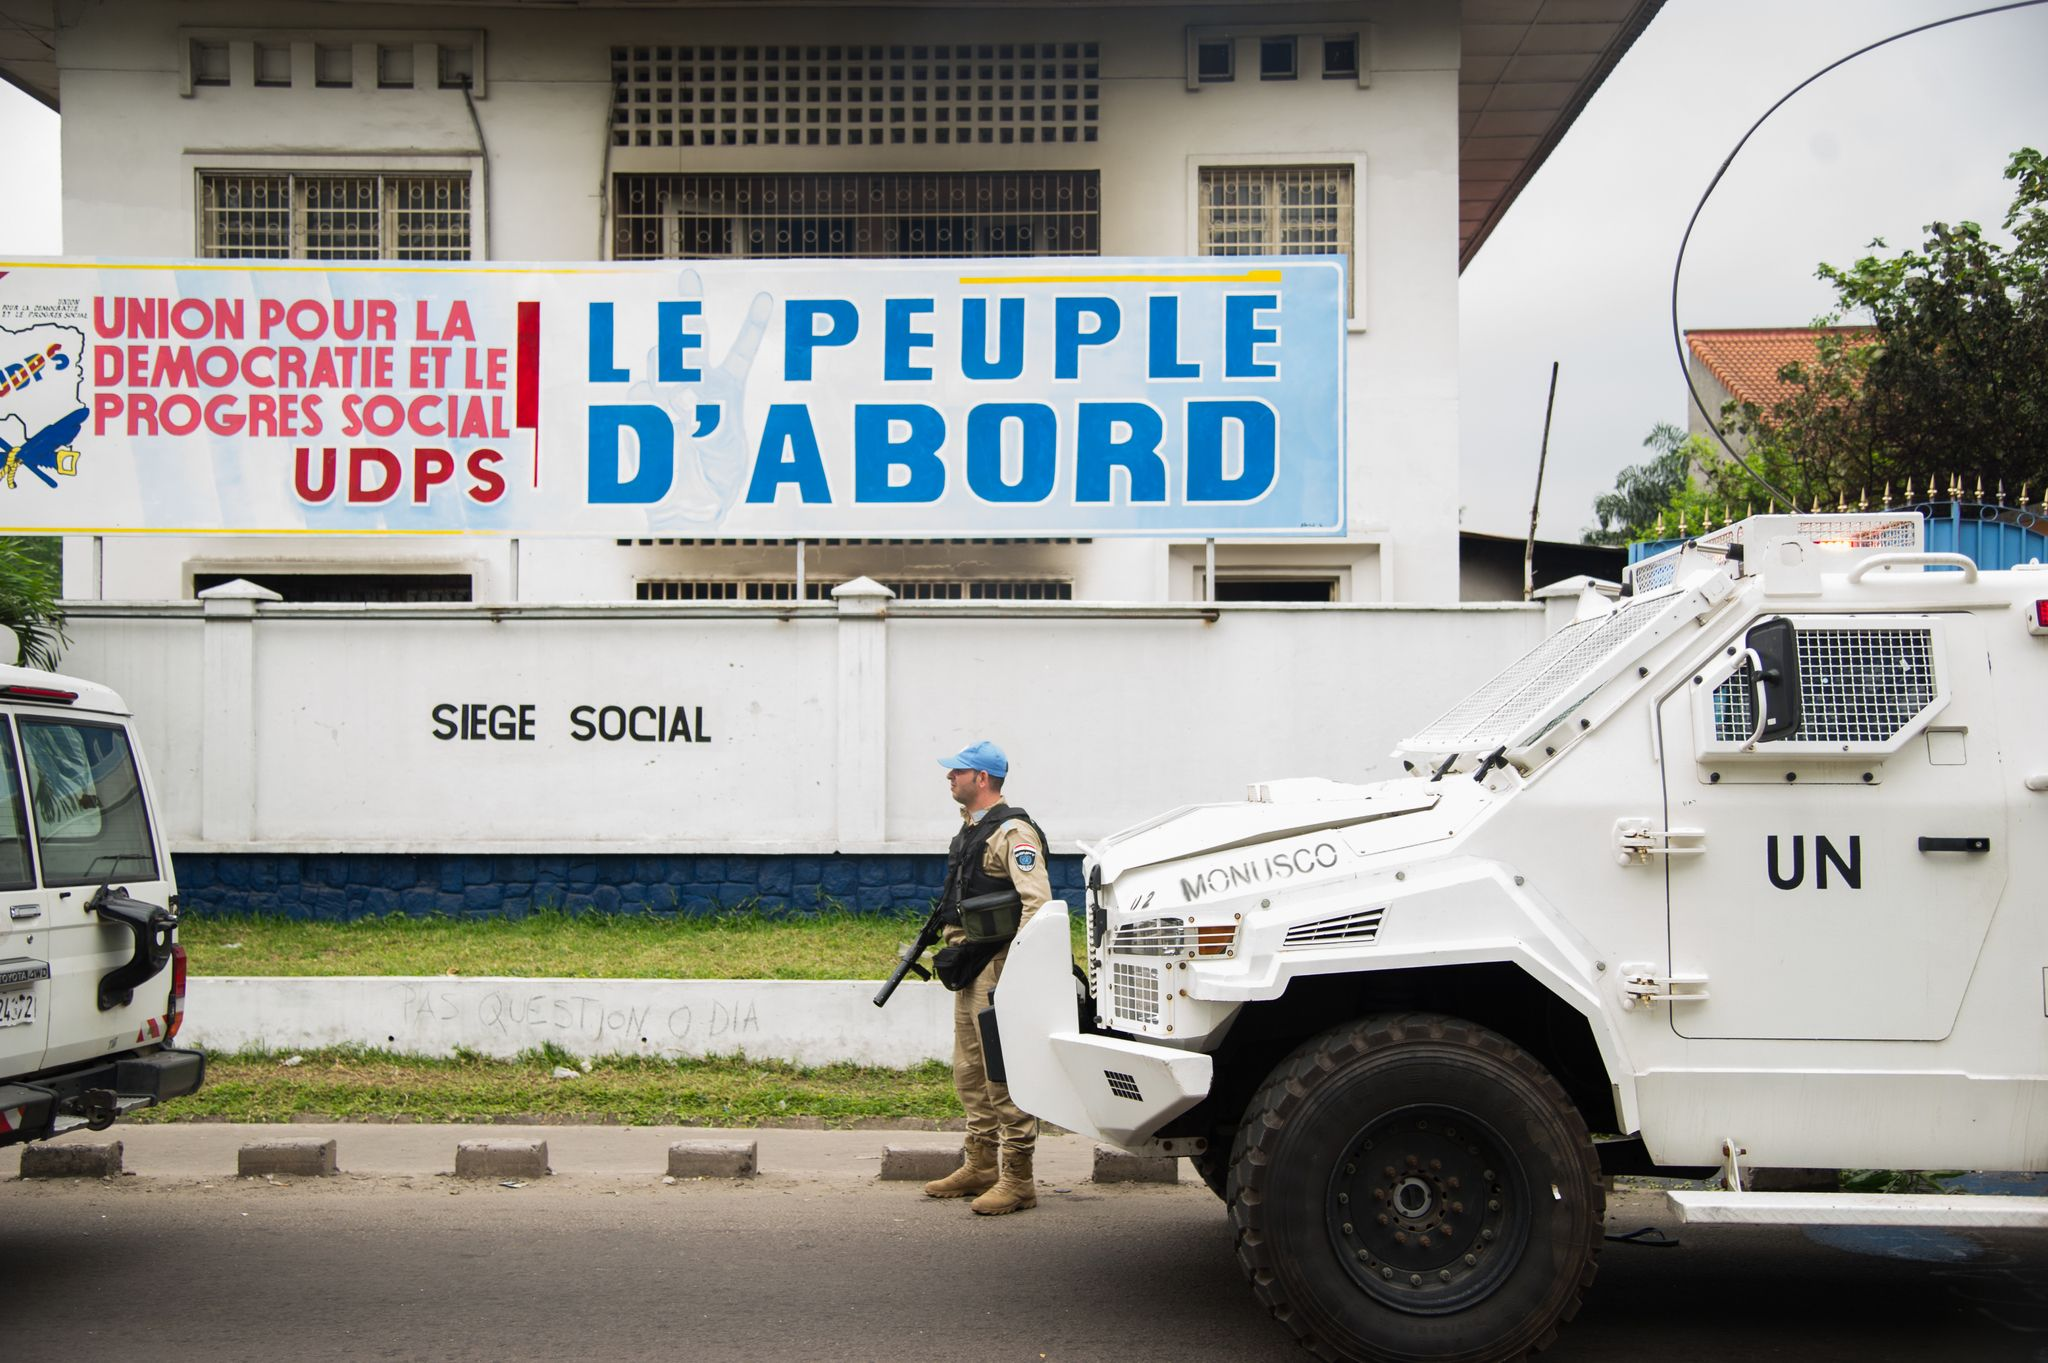 A peacekeeper of the MONUSCO, the UN mission in the Democratic Republic of Congo, stands guard on September 20, 2016 in front of the offices of the main opposition Union for Democracy and Social Progress (UDPS) party which were torched overnight and early on September 20, 2016, in Kinshasa.At least two burnt bodies could be seen in the fire-ravaged offices of the UDPS, while two other people were burnt alive and one person injured, they said. The fresh violence came after a bloody day on September 19, 2016 during which opposition groups said more than 50 people had died. Violence of September 19, 2016 started just before an opposition rally by demonstrators who fear Kabila -- who has ruled the Democratic Republic of Congo since 2001 -- is planning to extend his rule unconstitutionally. / AFP PHOTO / JUNIOR D.KANNAH